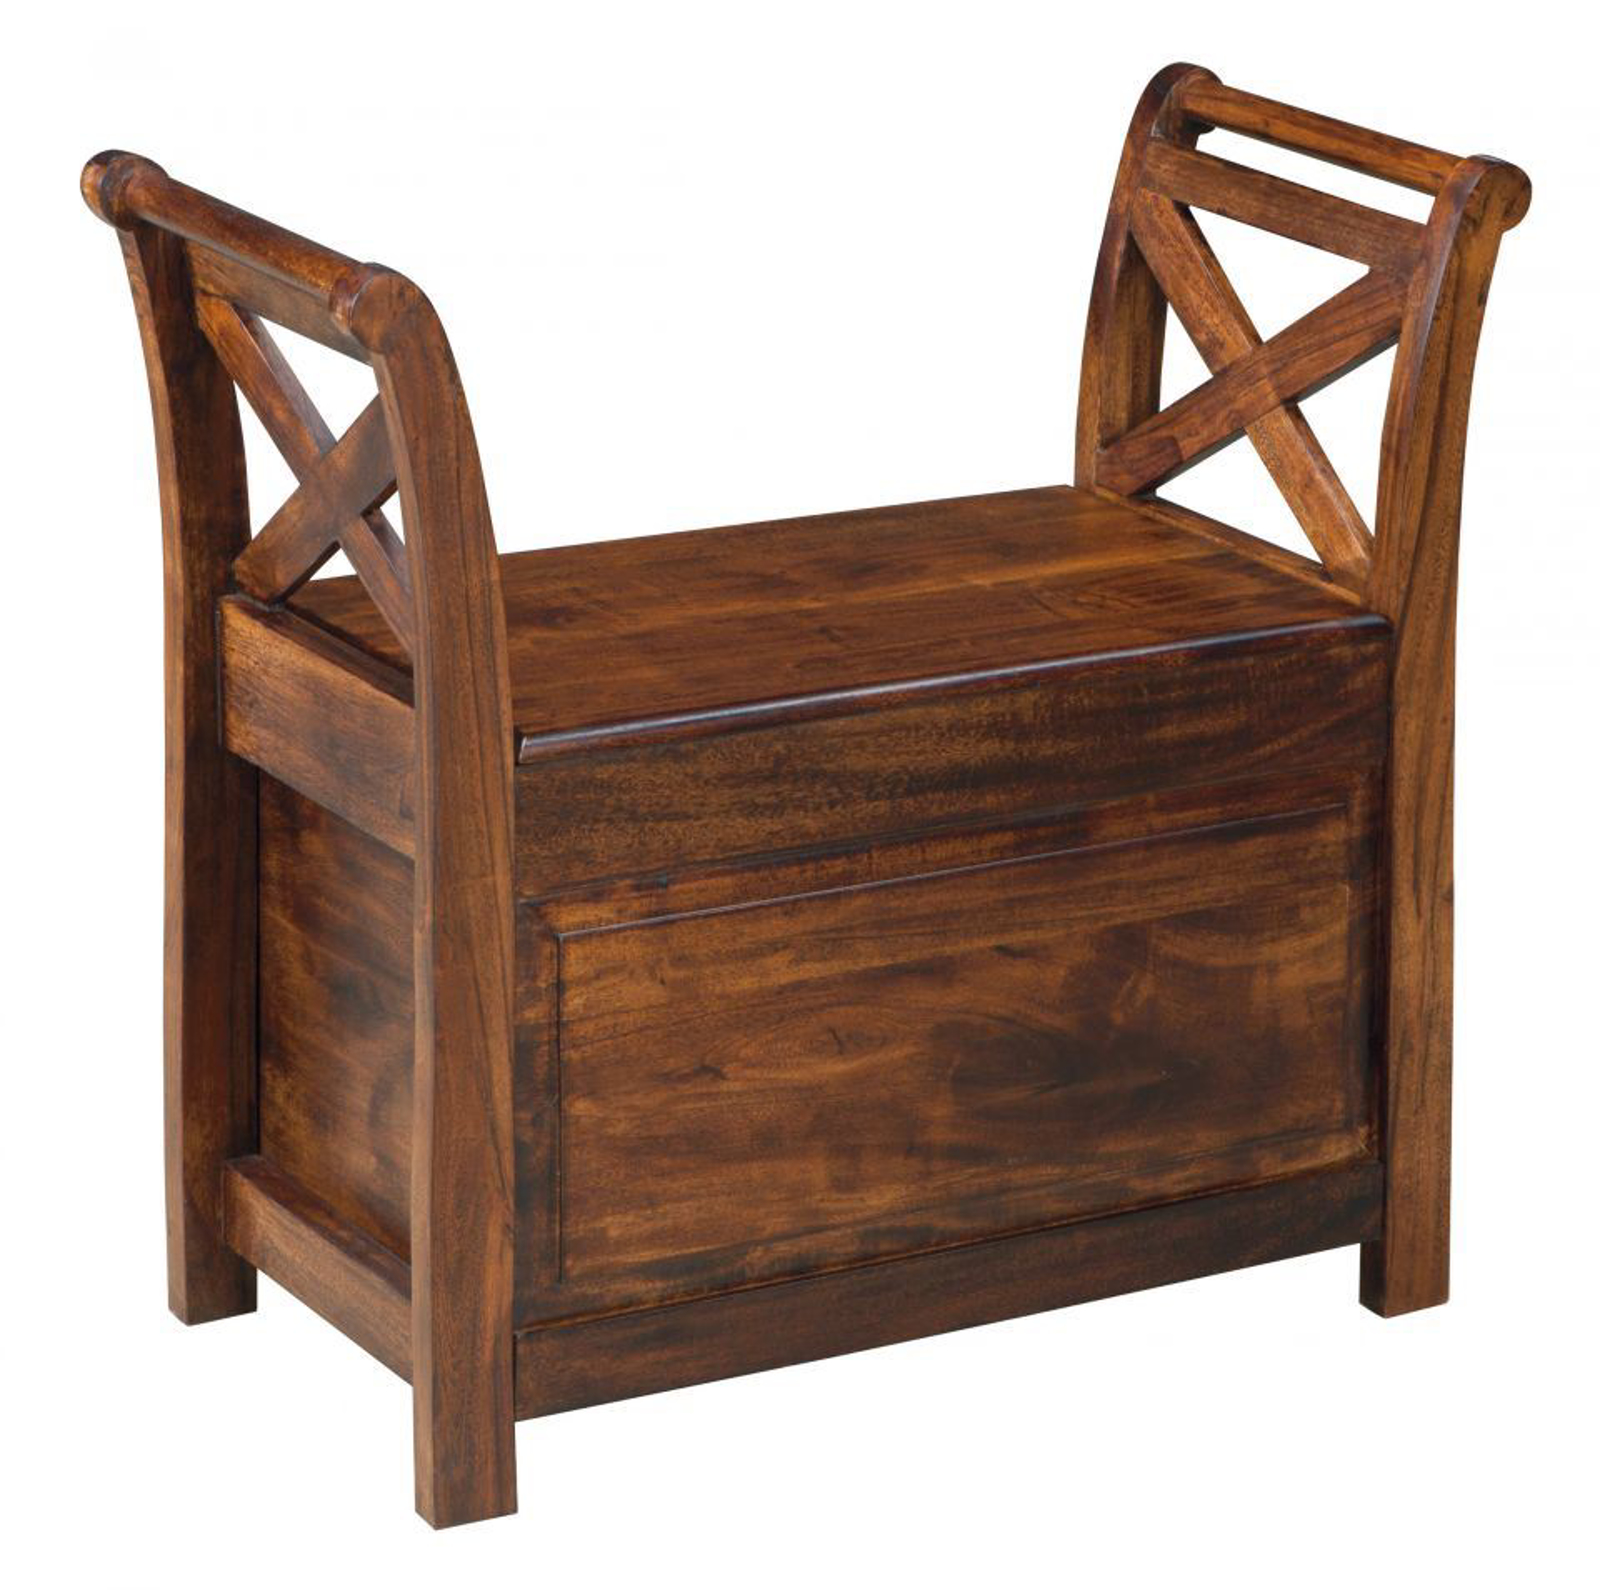 Picture of Abbonto Accent Bench